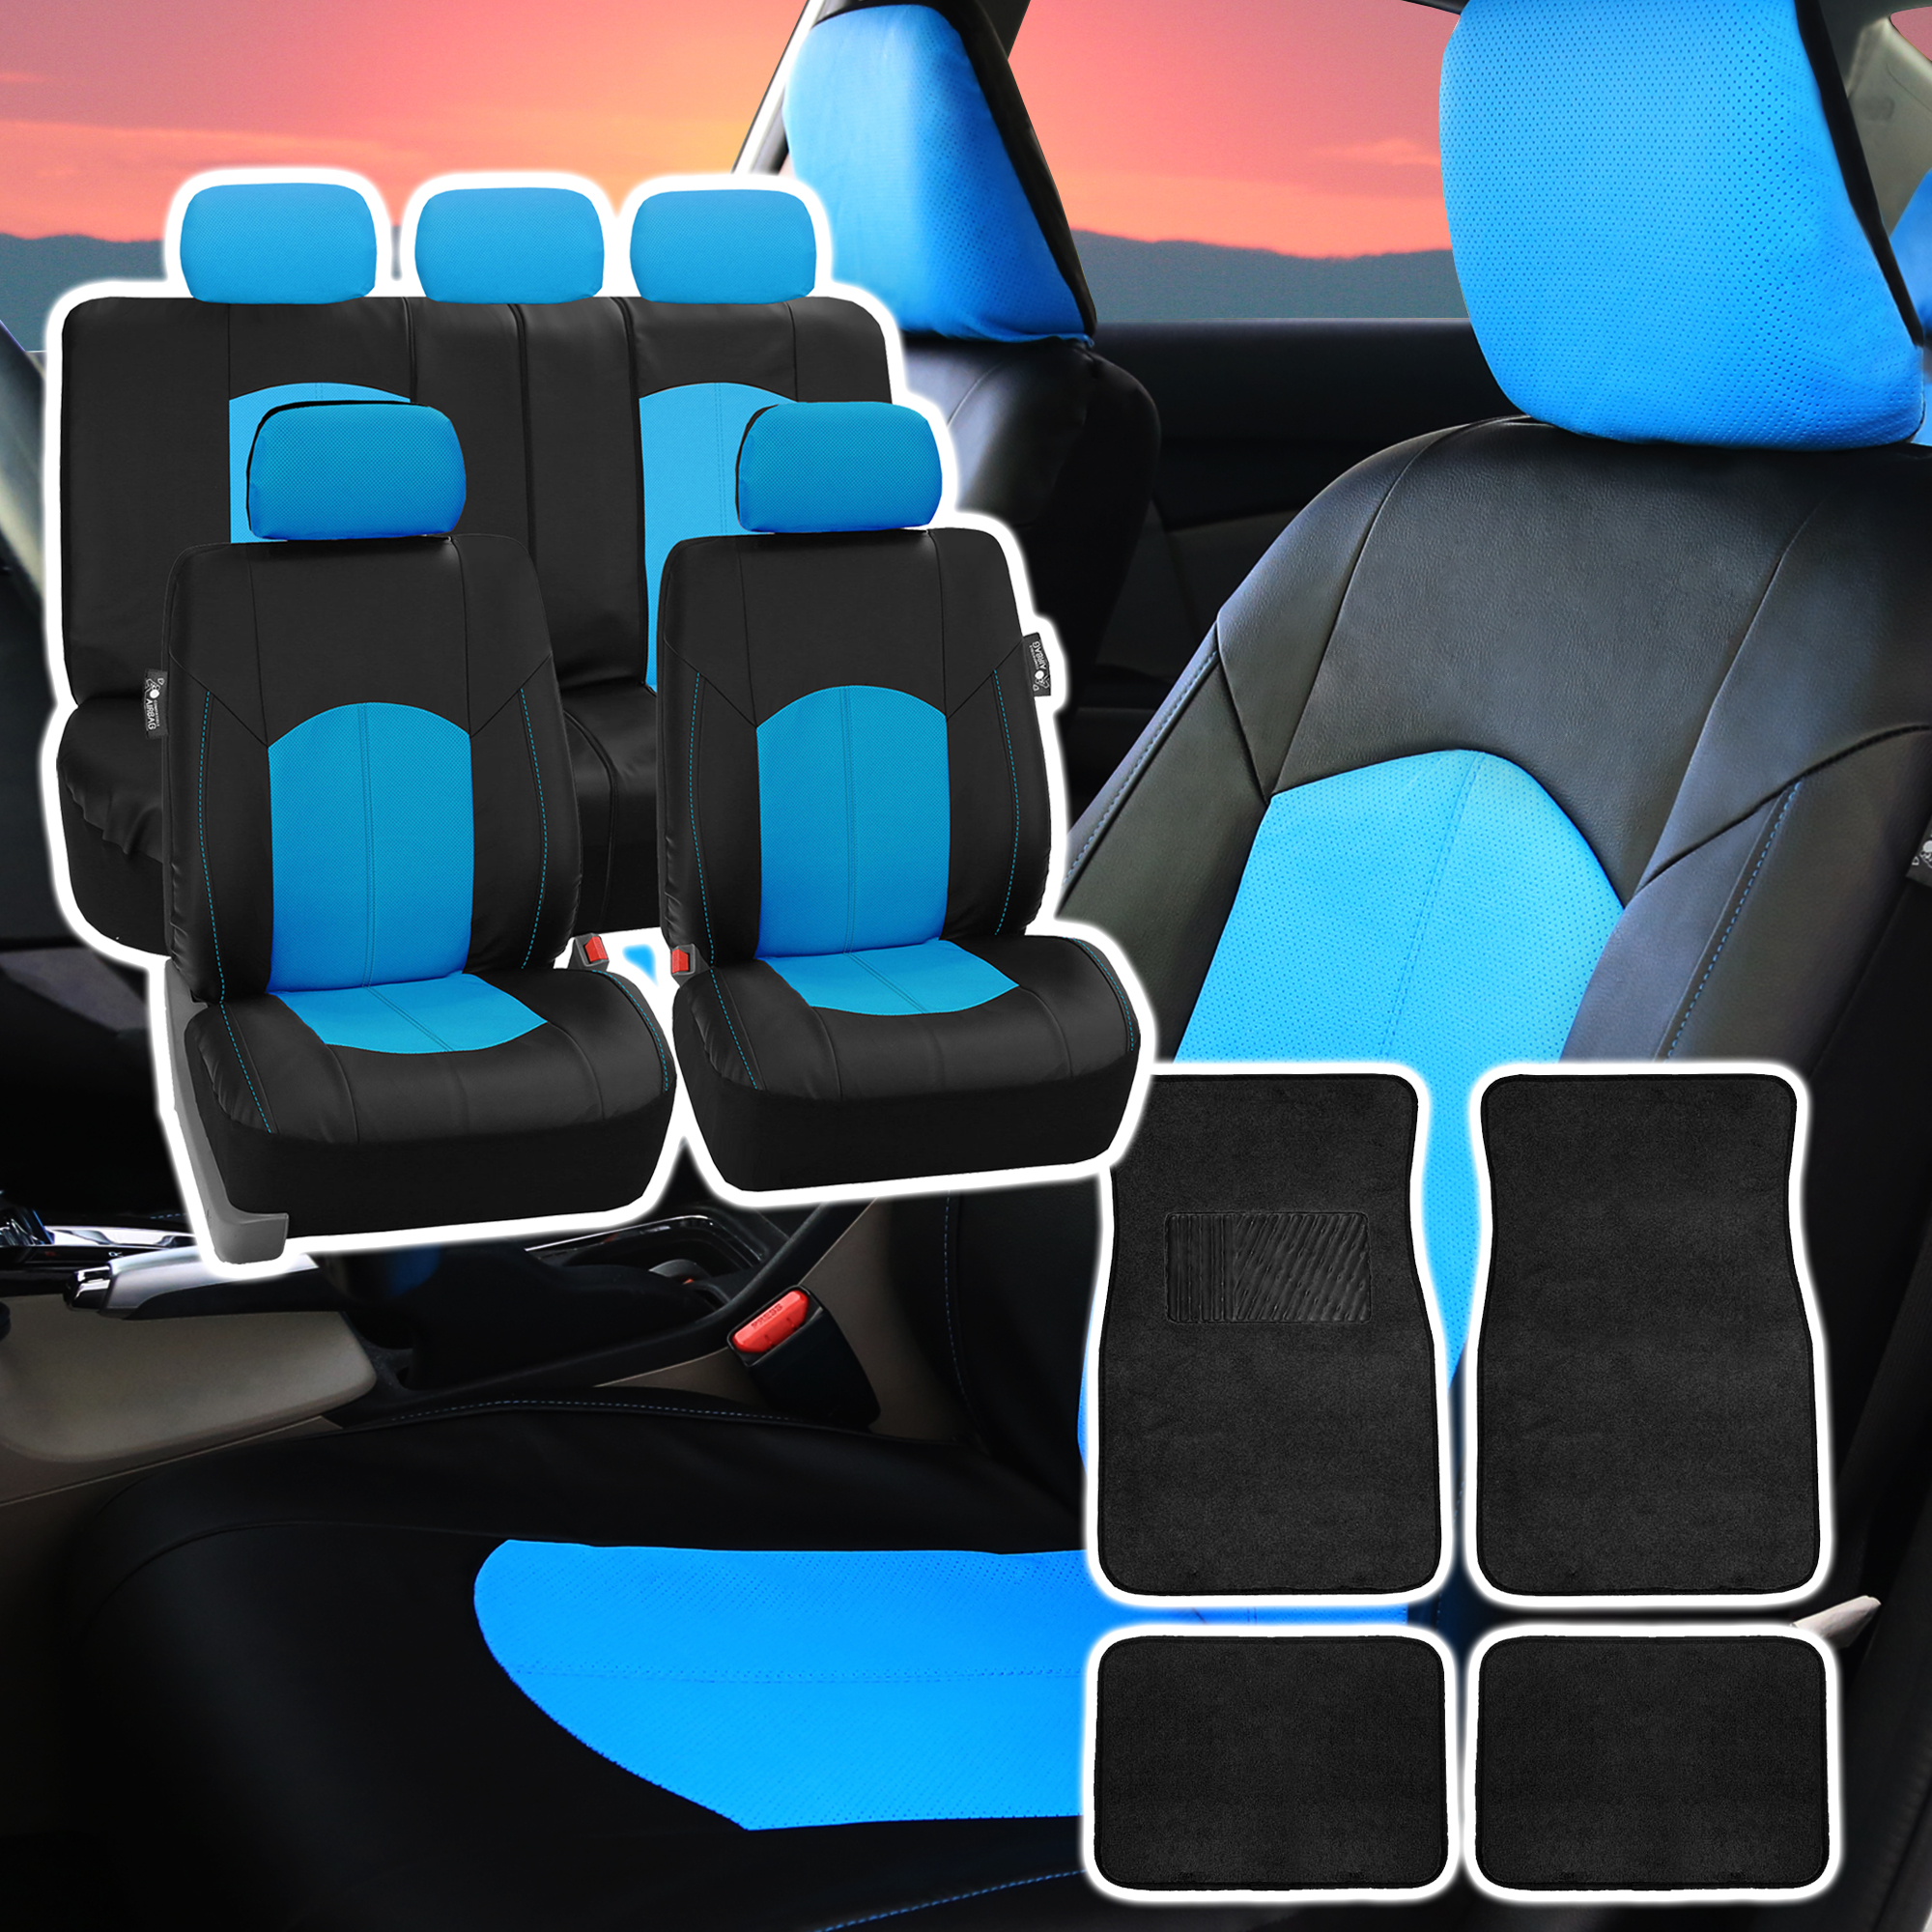 deluxe perforated leather car seat cover blue w floor mat ebay. Black Bedroom Furniture Sets. Home Design Ideas